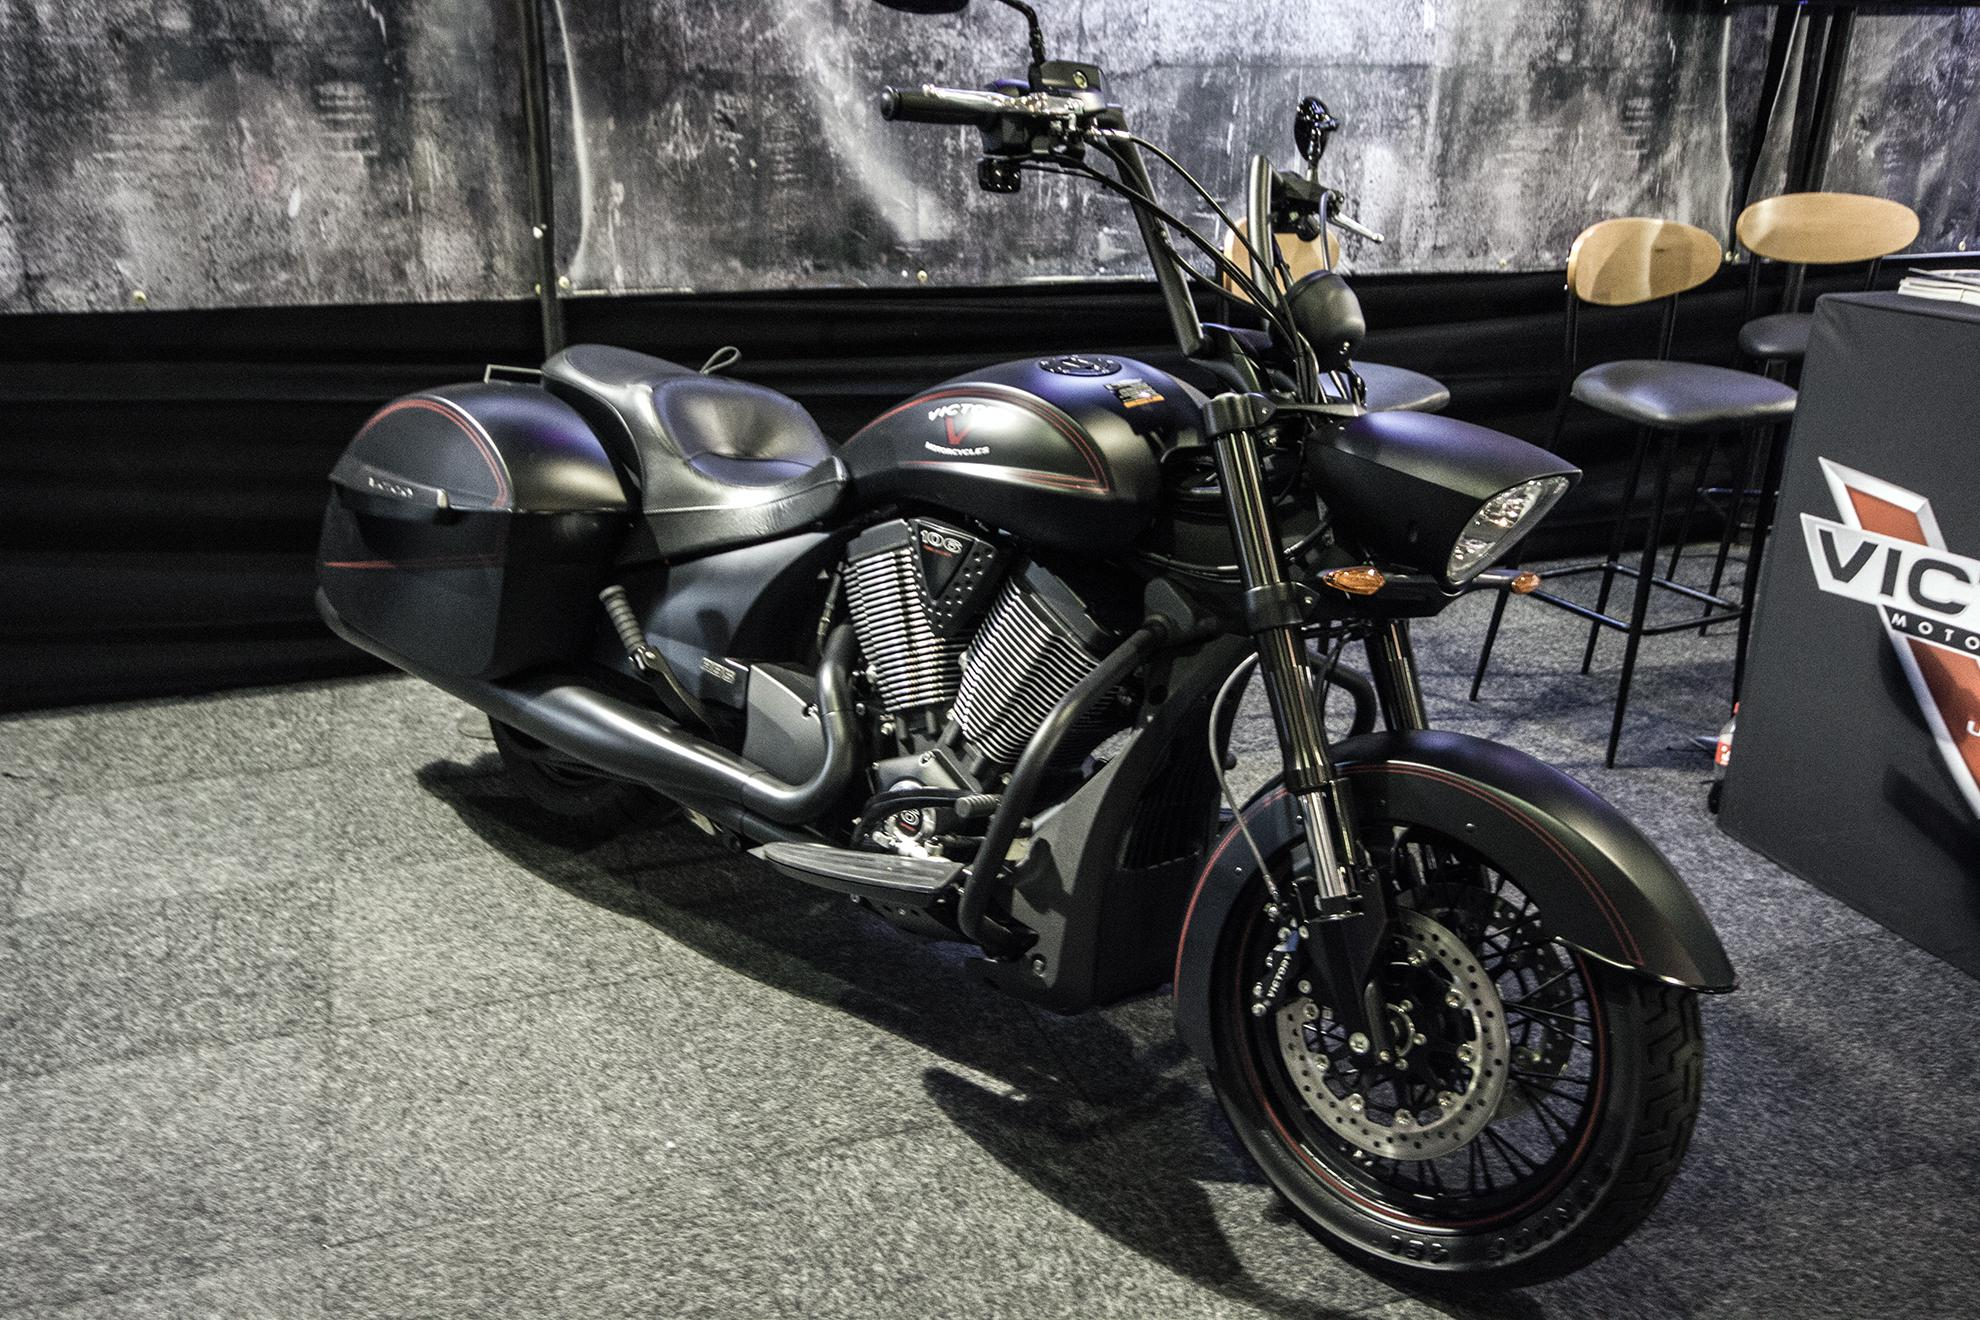 Victory-Johannesburg-Motorcycle-Show-2012-05